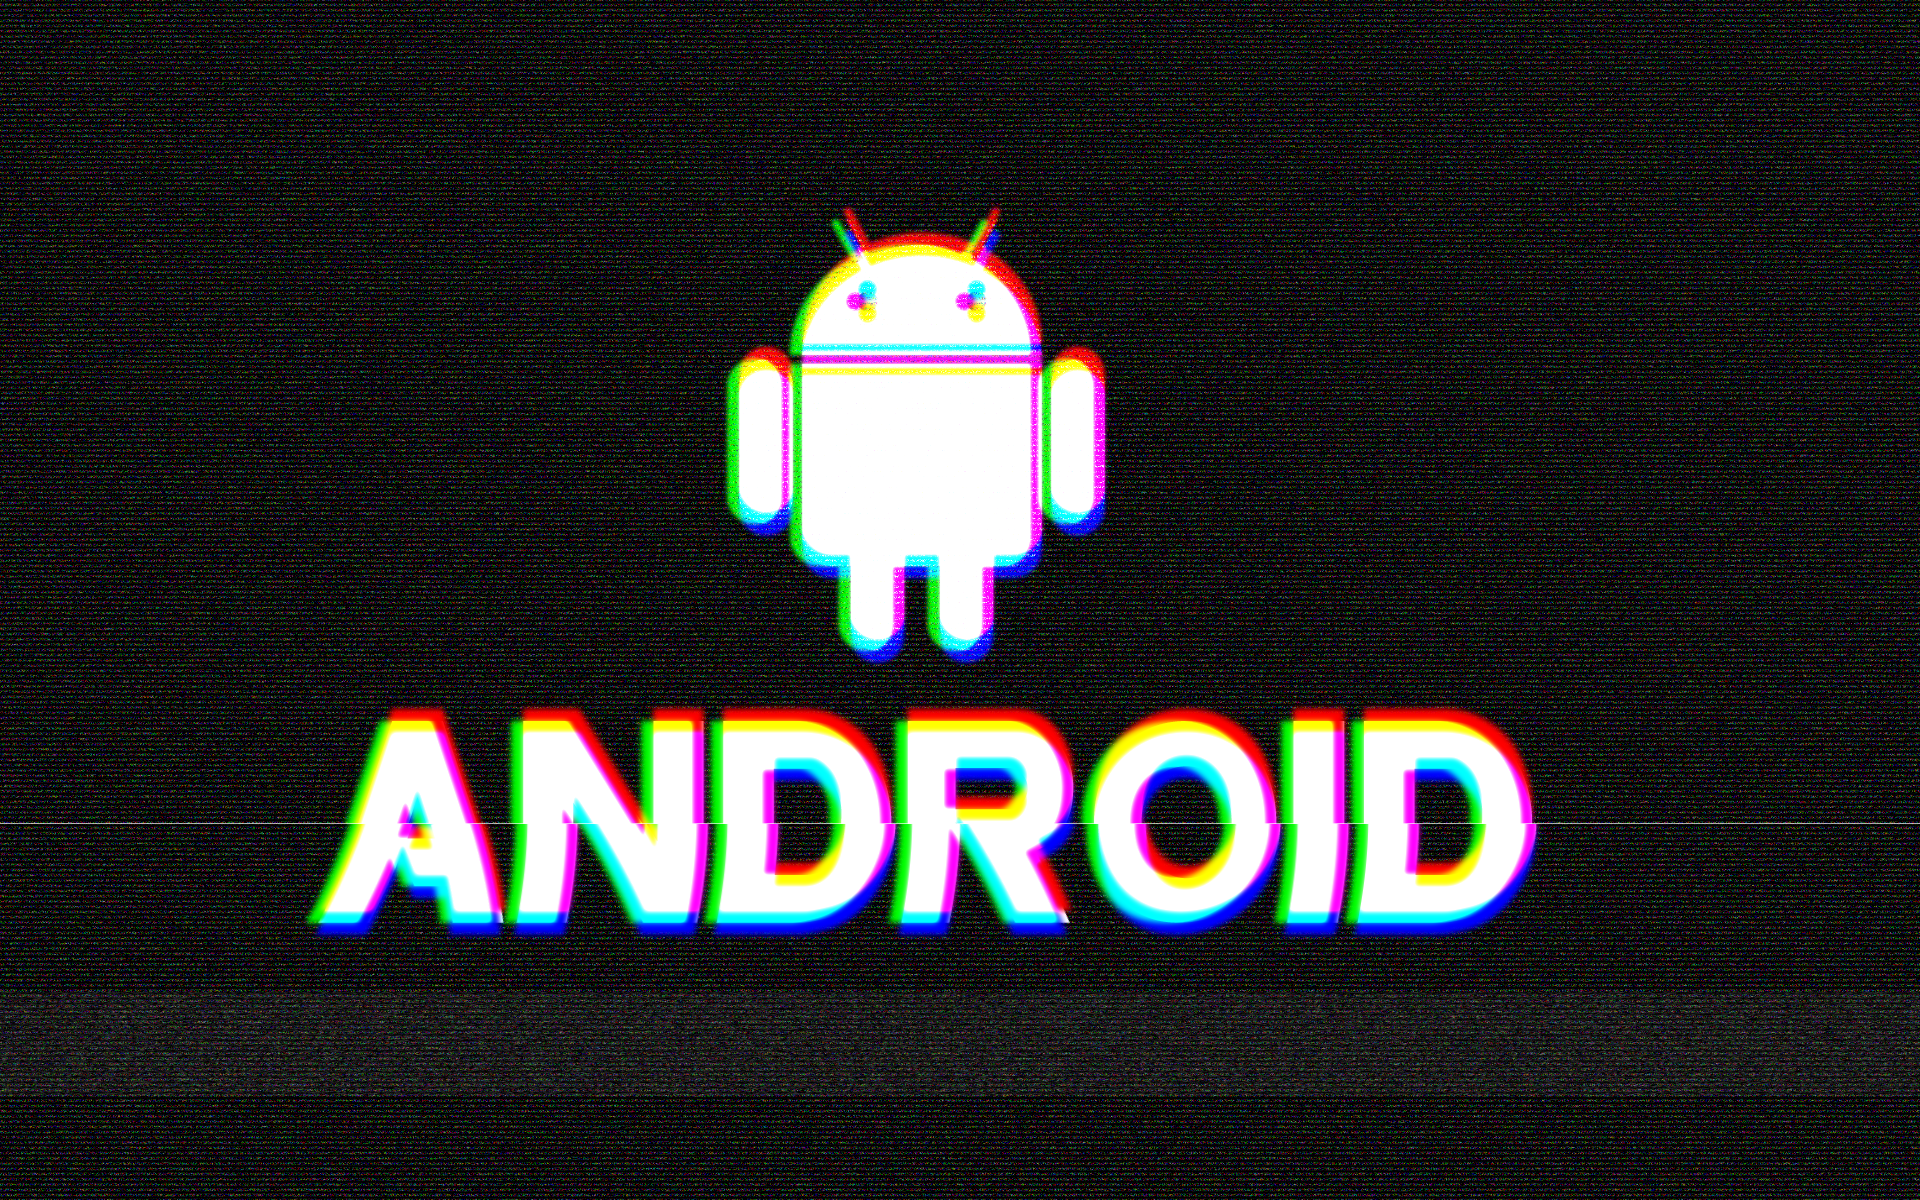 Android_Retro_by_Lqasse